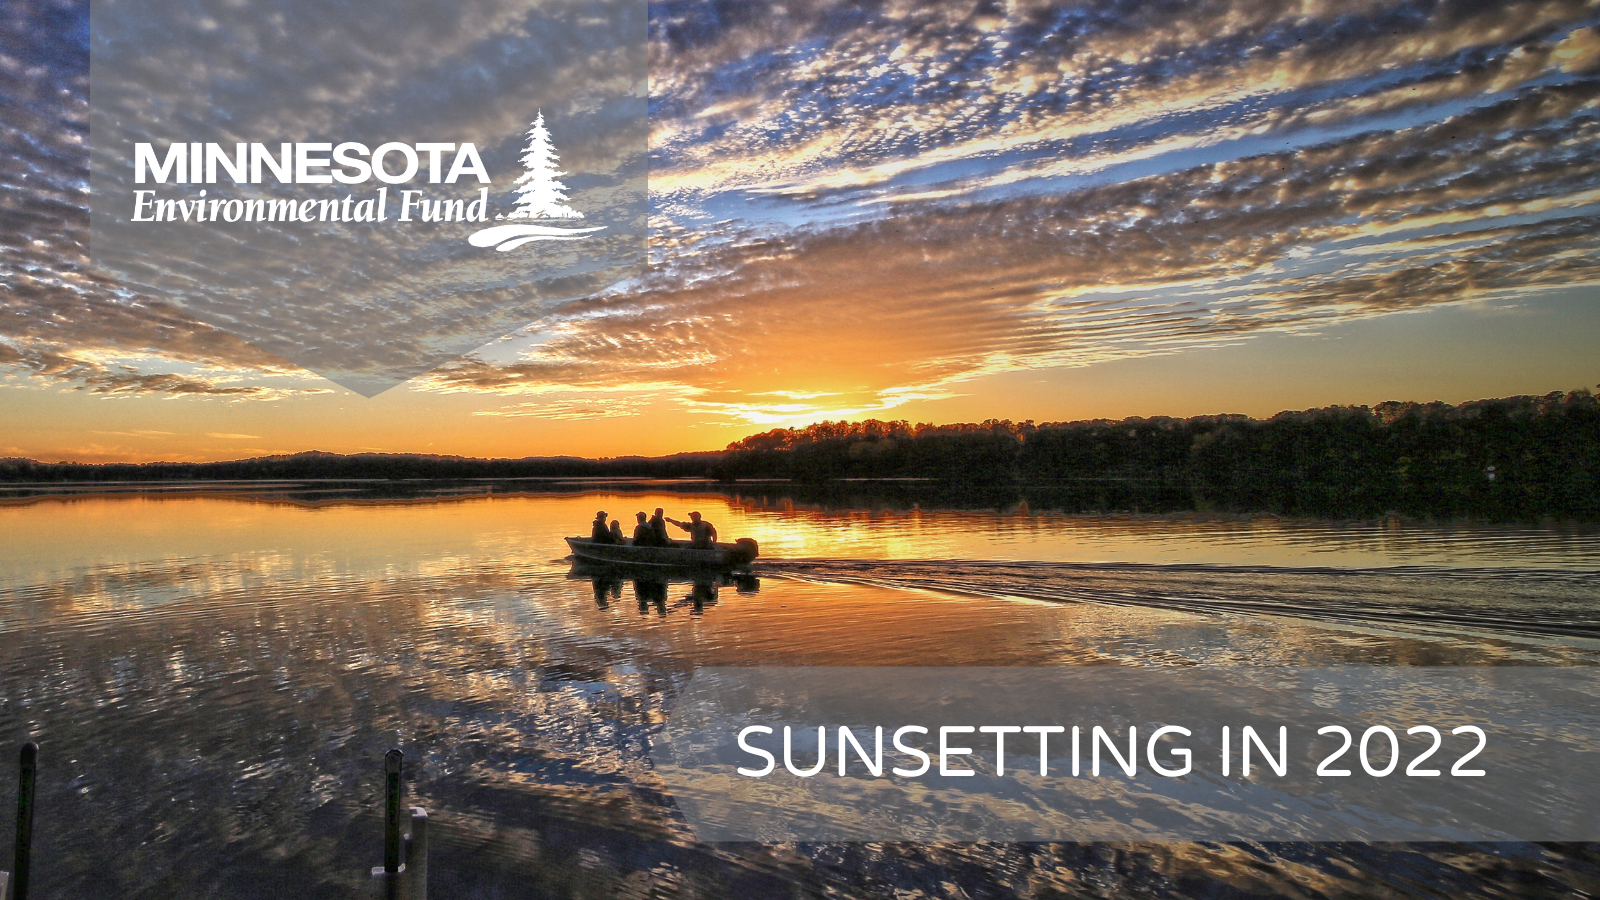 Sunsetting of the Minnesota Environmental Fund – A Letter to Our Supporters